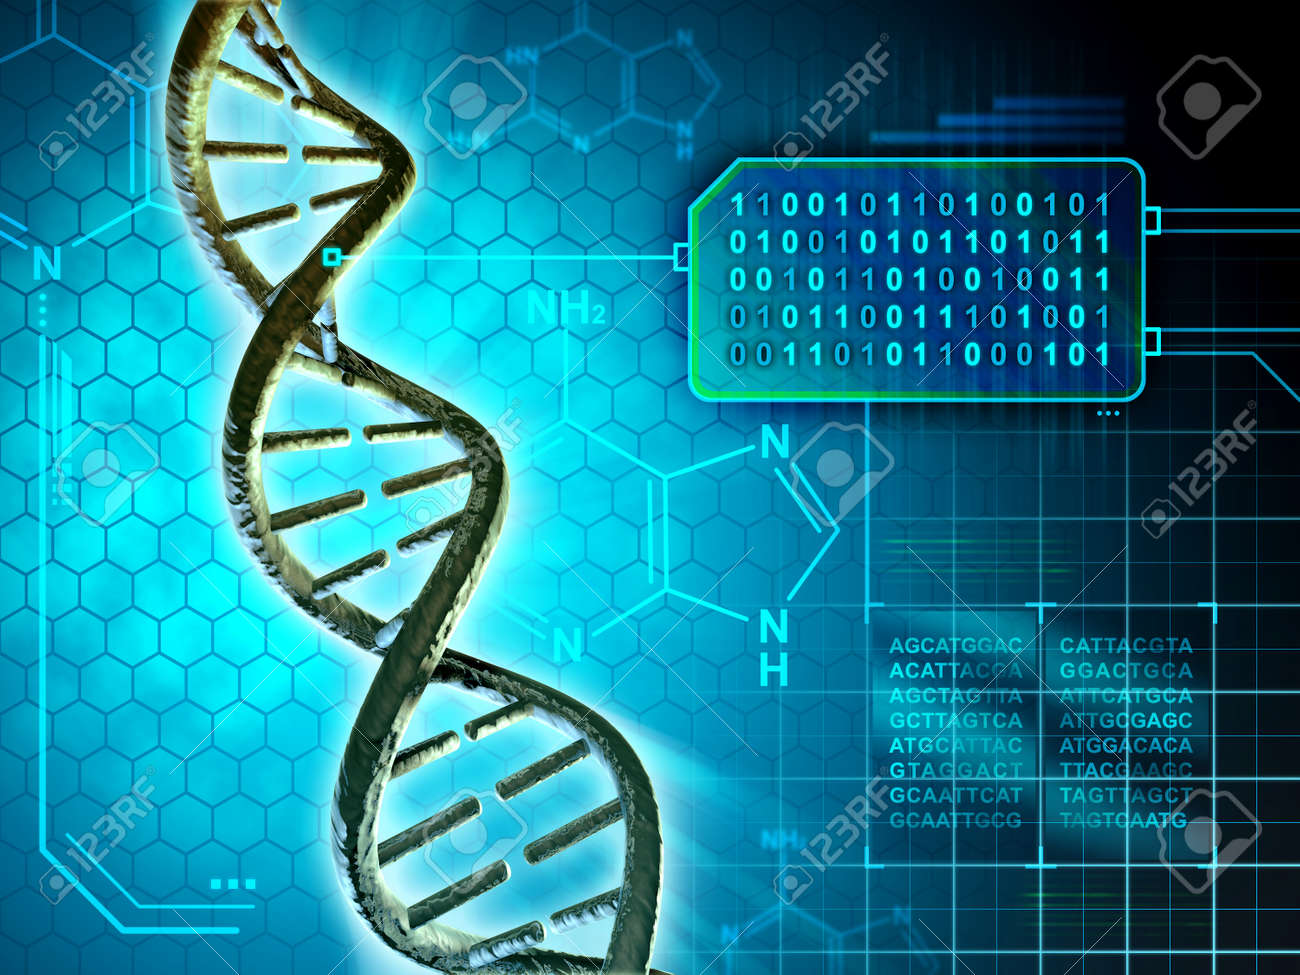 Dna structure converted into binary code. Digital illustration. - 50824627